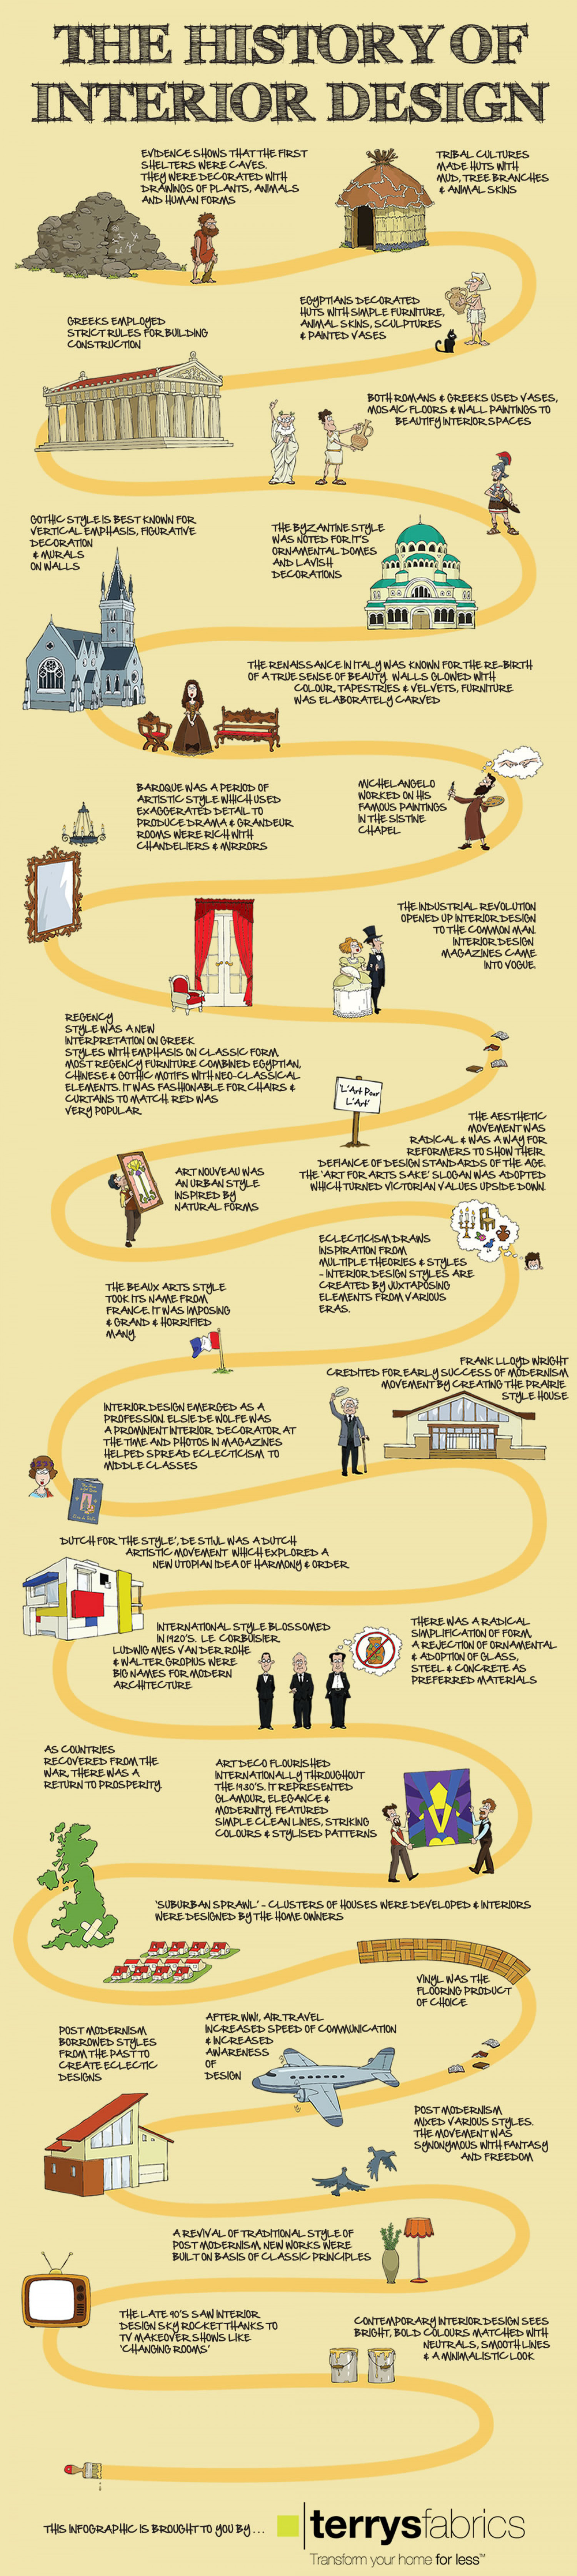 The History of Interior Design Infographic